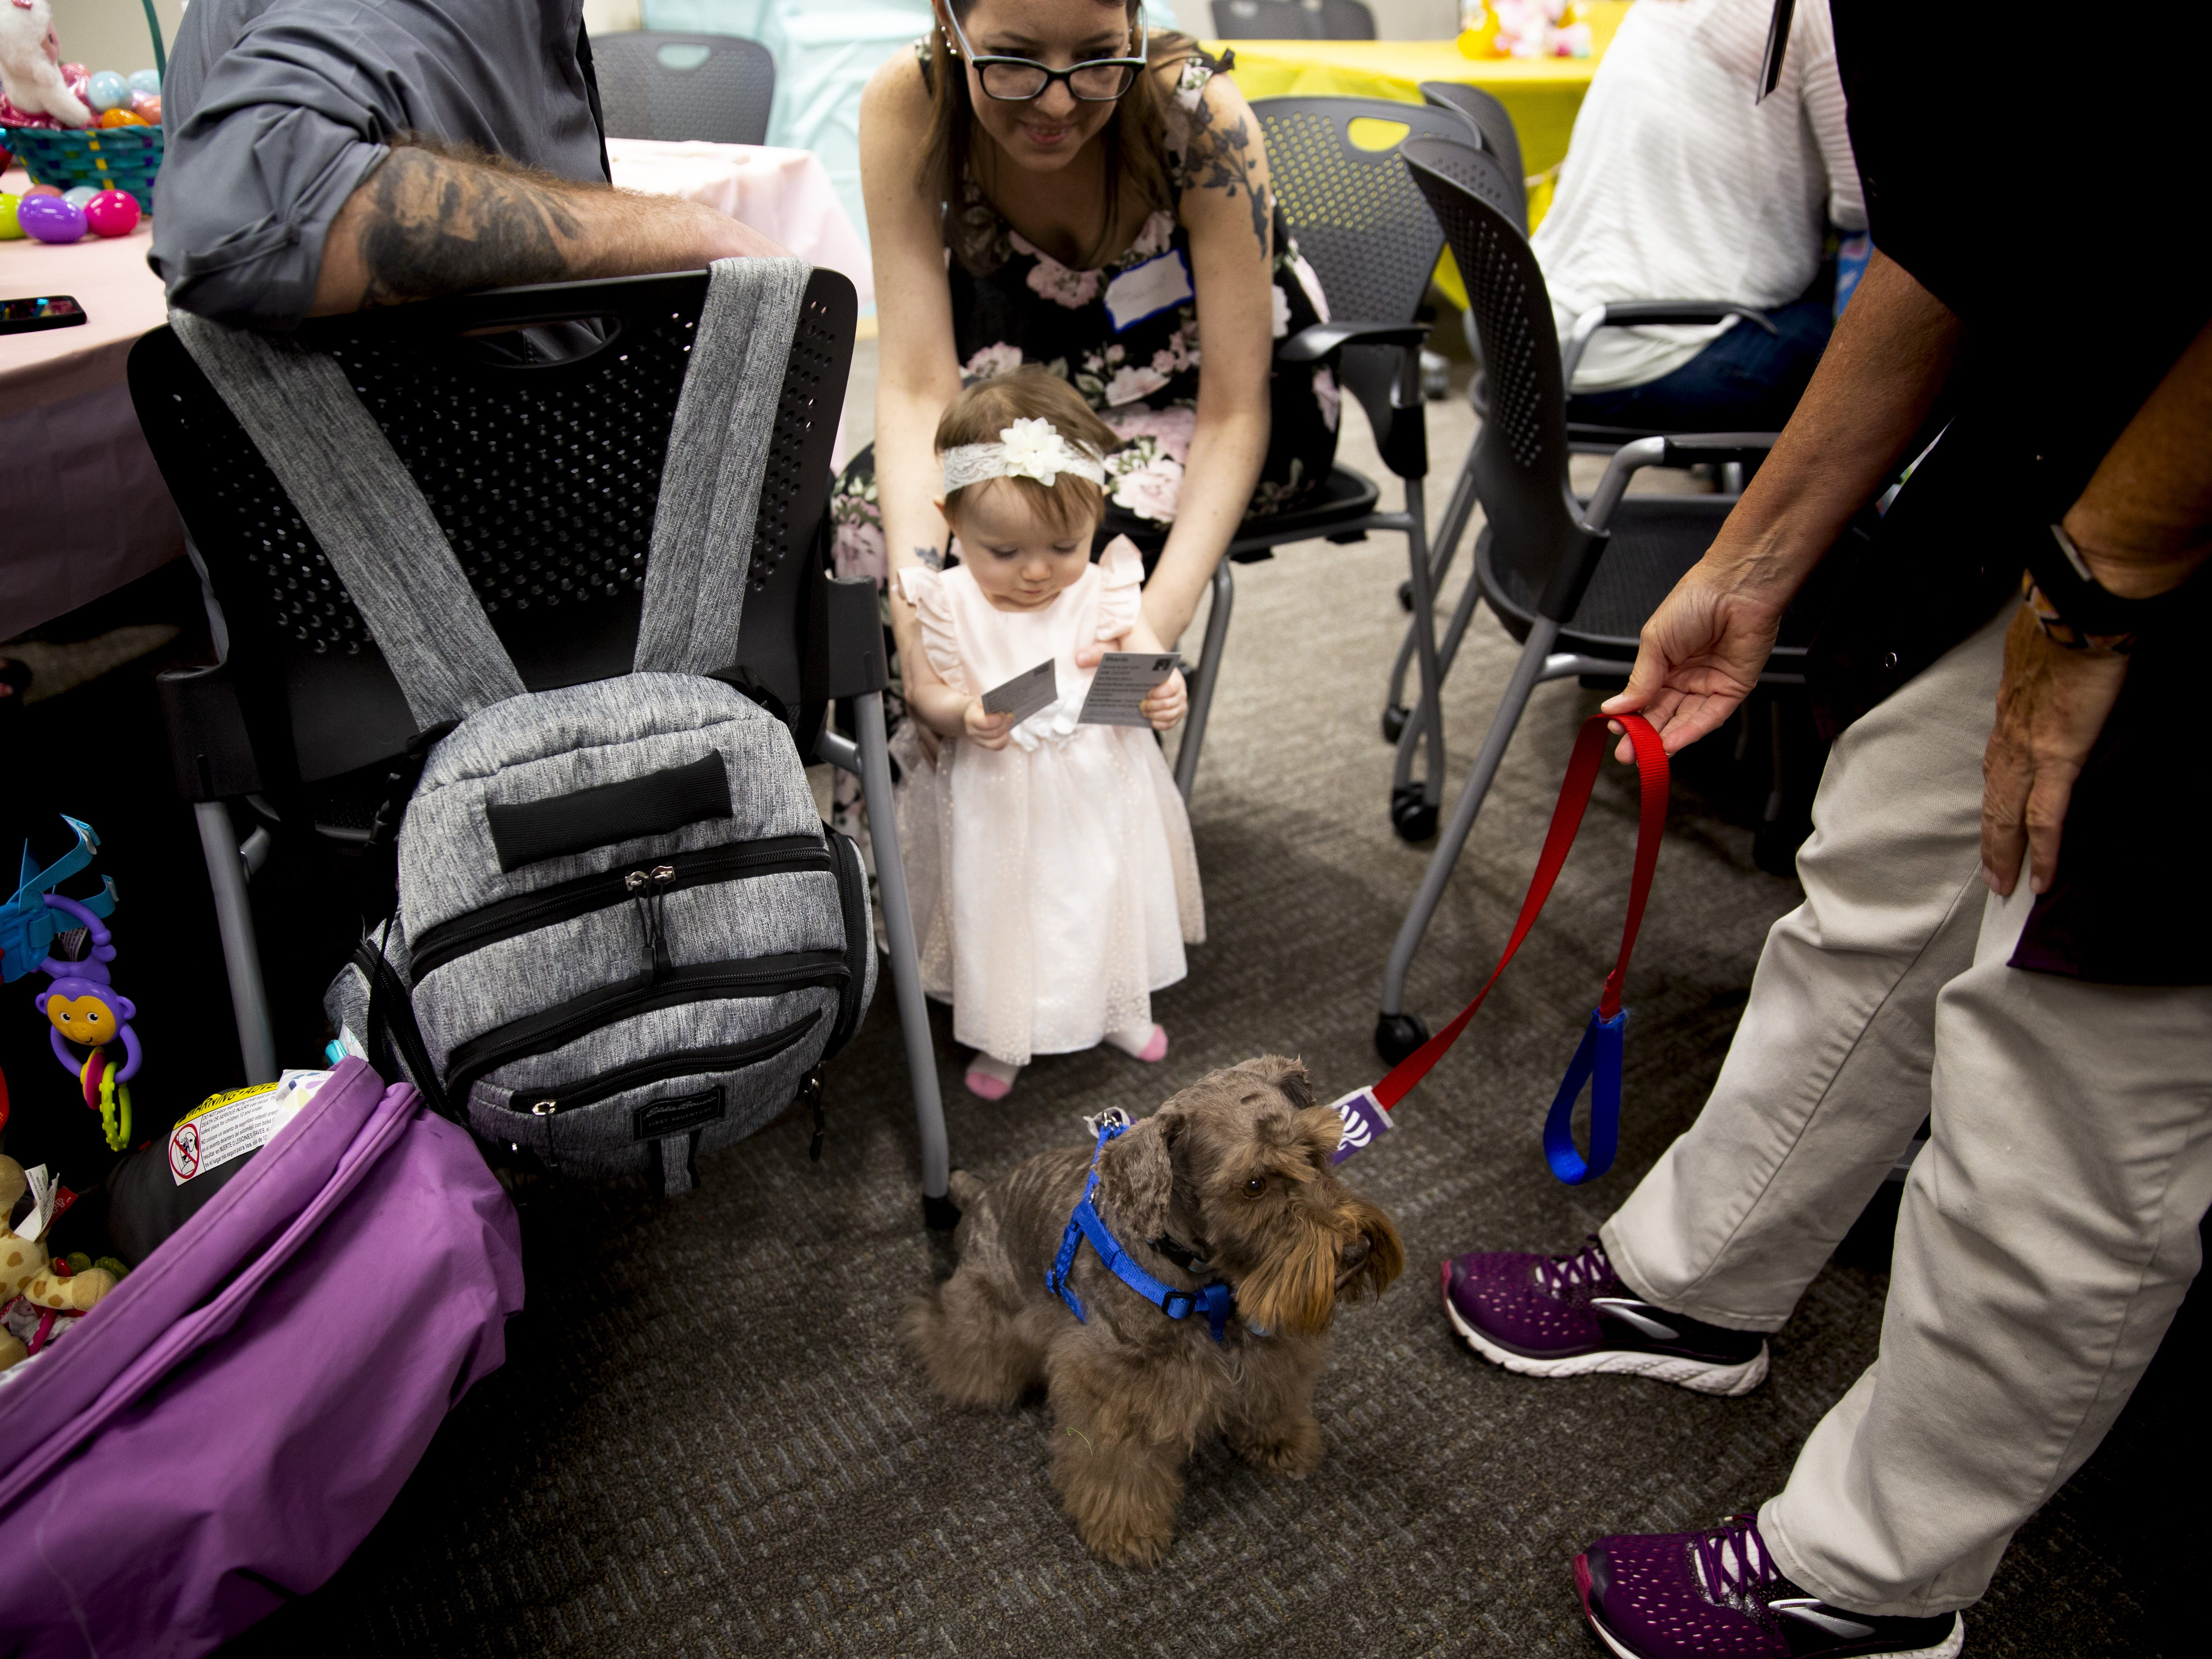 Olivia Pardue, 30 months, holds the therapy dogs' business cards at the Preemie NICU Reunion at Banner University Medical Center on April 13, 2019.